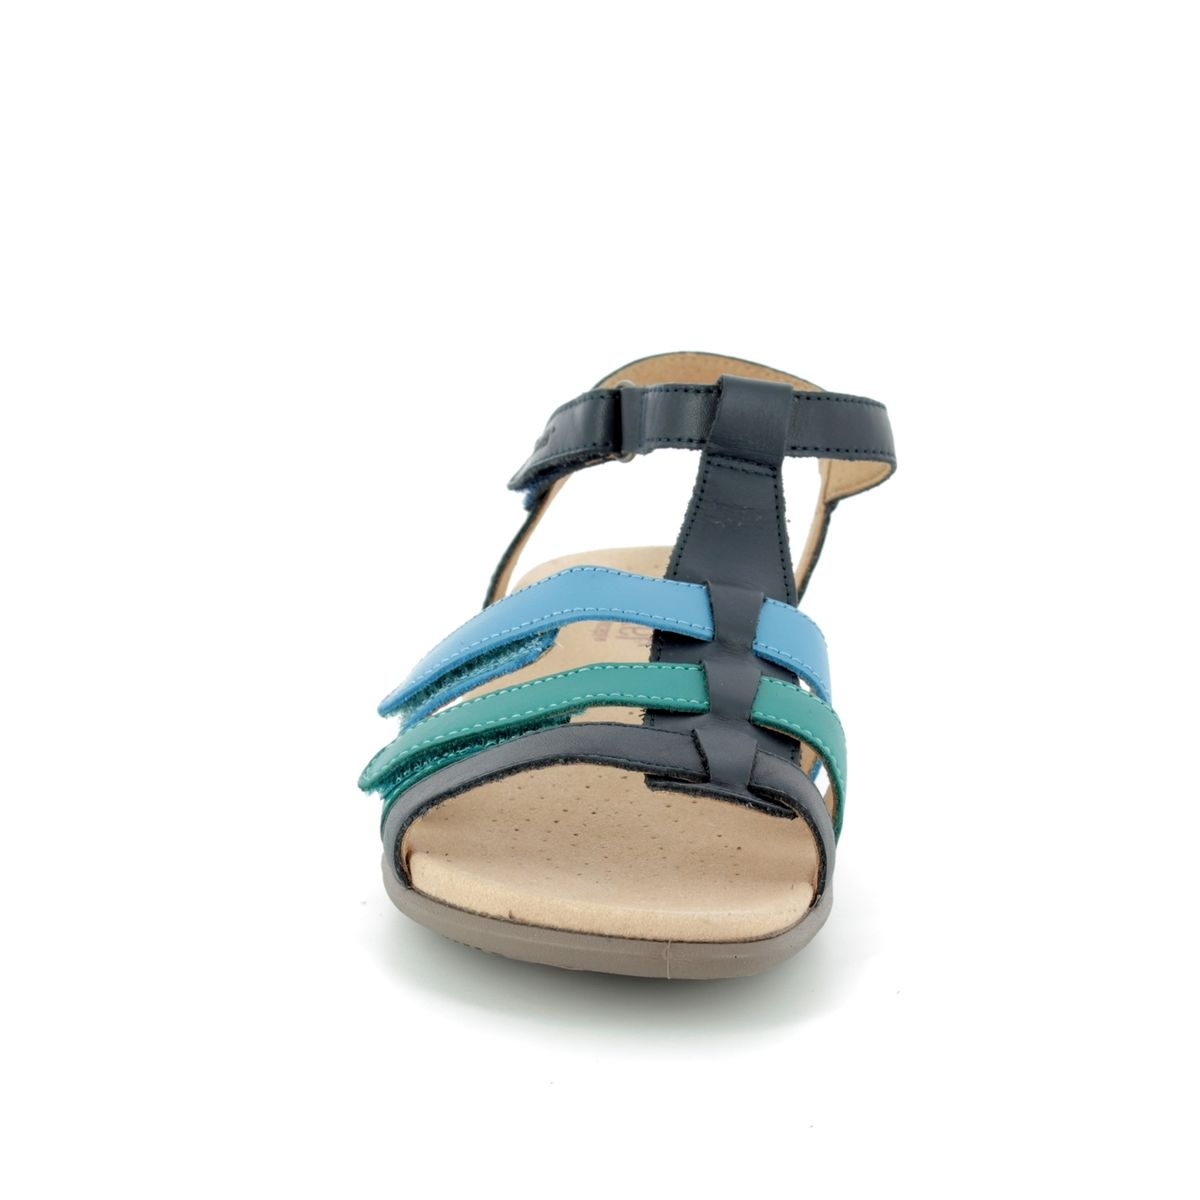 1361ba7cec6 Hotter Sandals - Navy multi - 8110 70 SOL E FIT